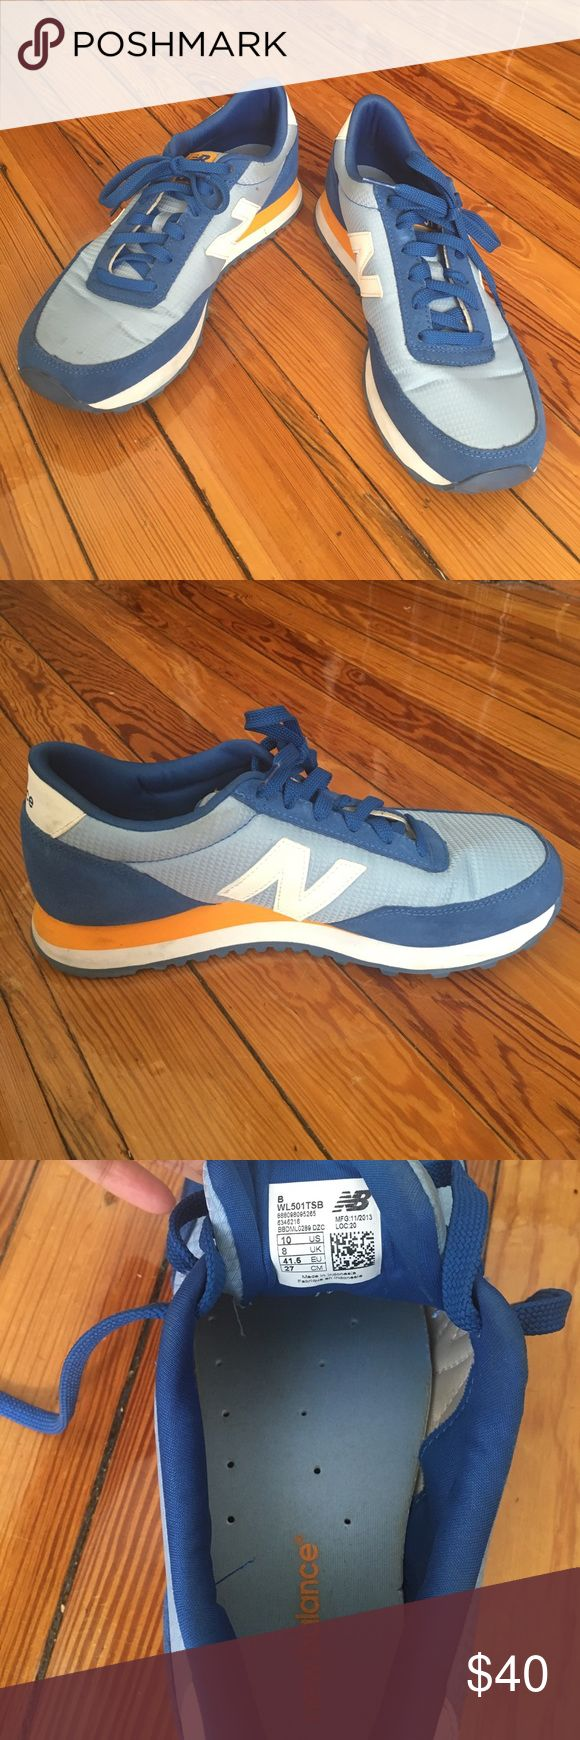 Blue and Yellow New Balance sneakers Blue and yellow sneakers in size 10 new balance 501. In good condition, worn a few times. New Balance Shoes Sneakers